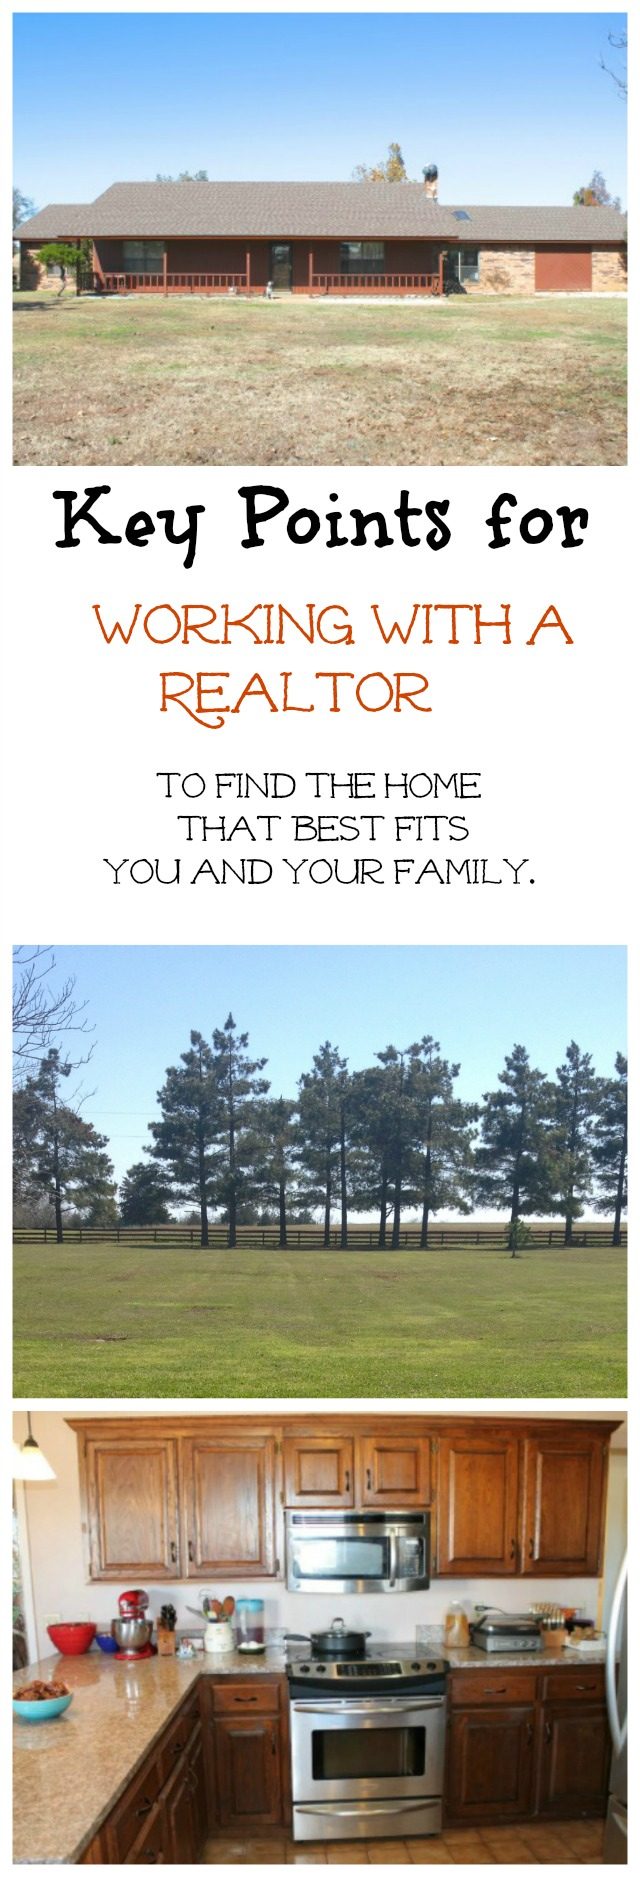 Keypoints on working with a REALTOR to find the best home to fit you and your family. From Miss in the Kitchen #sponsored